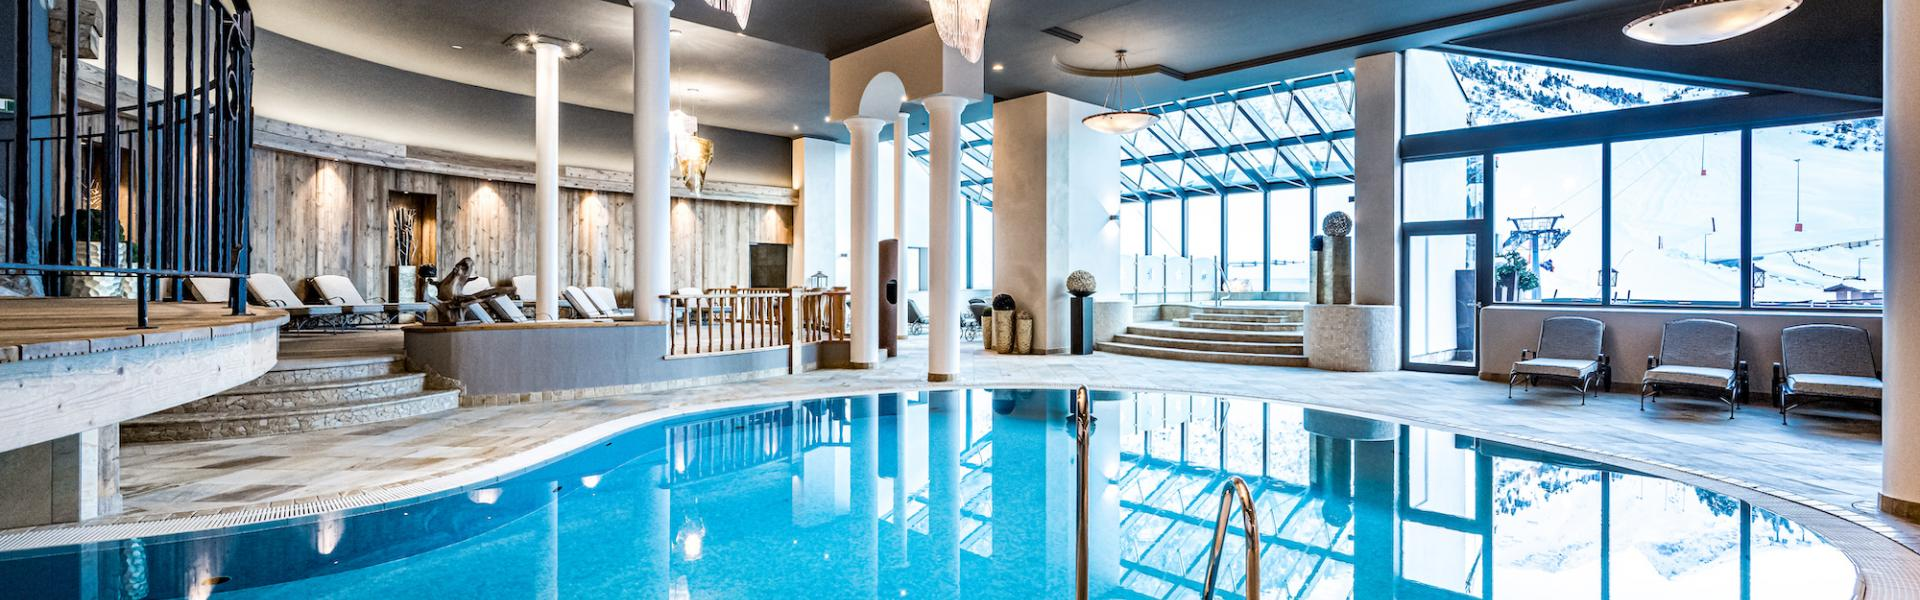 indoor swimming pool wellness vacation ötztal